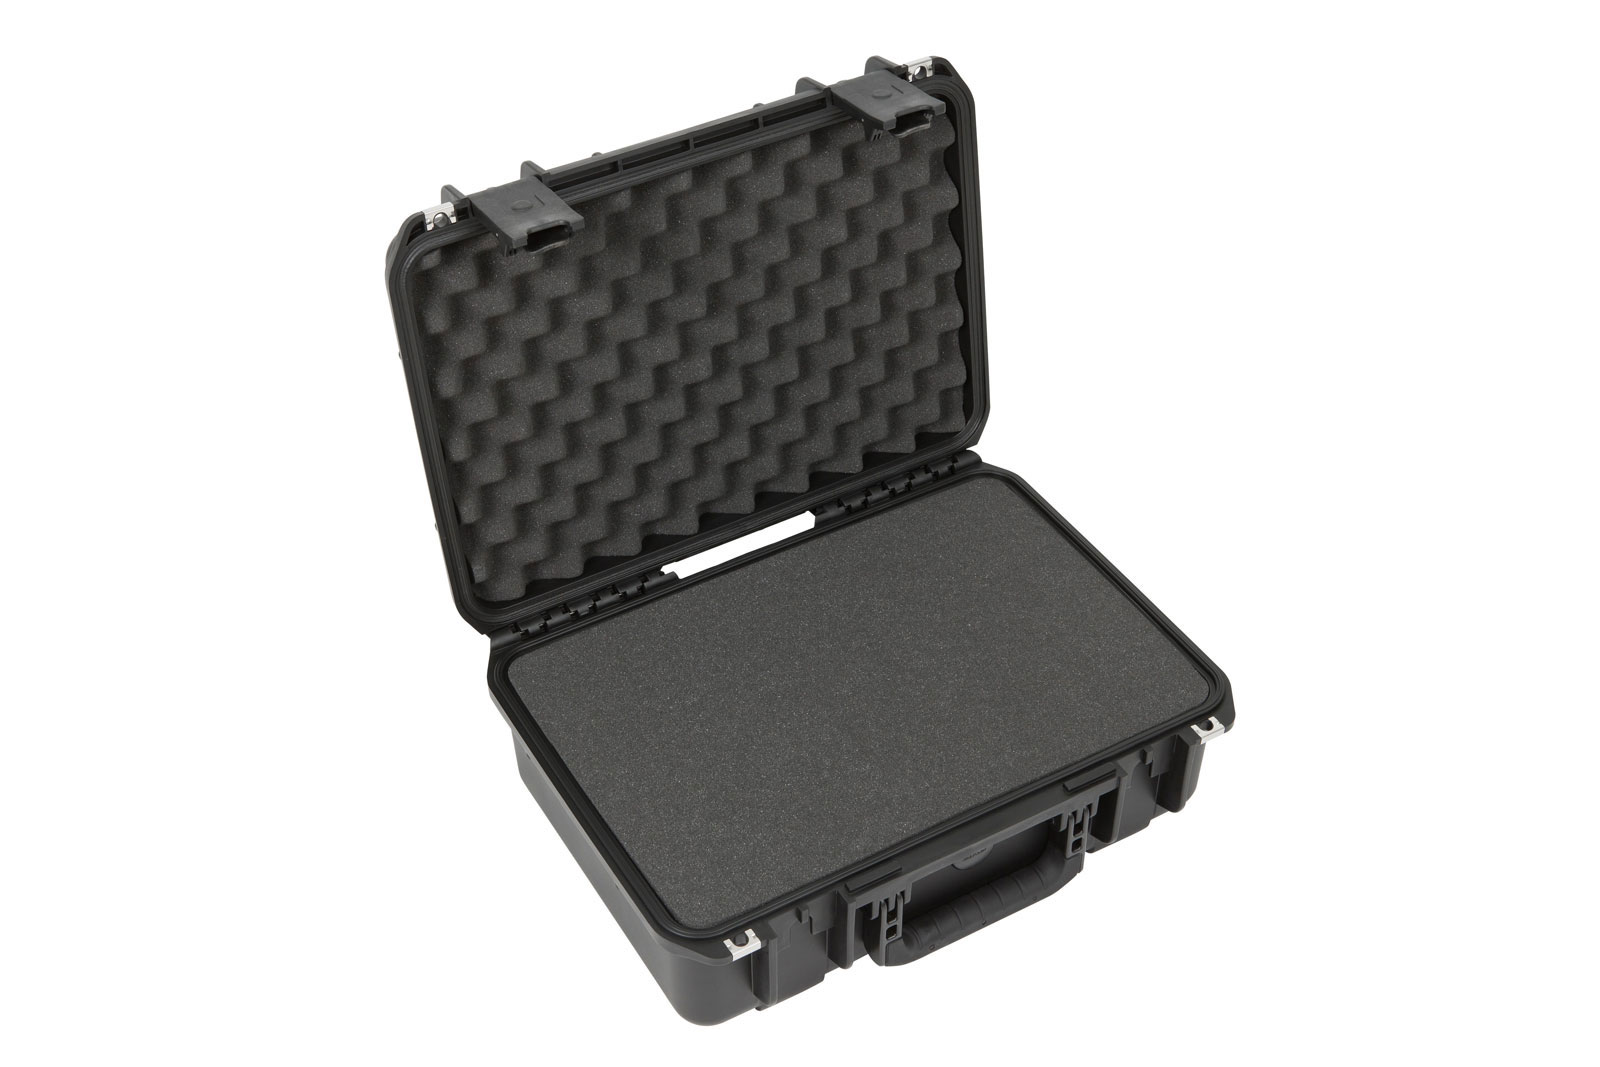 3I-1711-6B-C SKB UNIVERSAL WATERPROOF CASE 432 X 292 X 152 (108+44) MM WITH CUBED FOAM